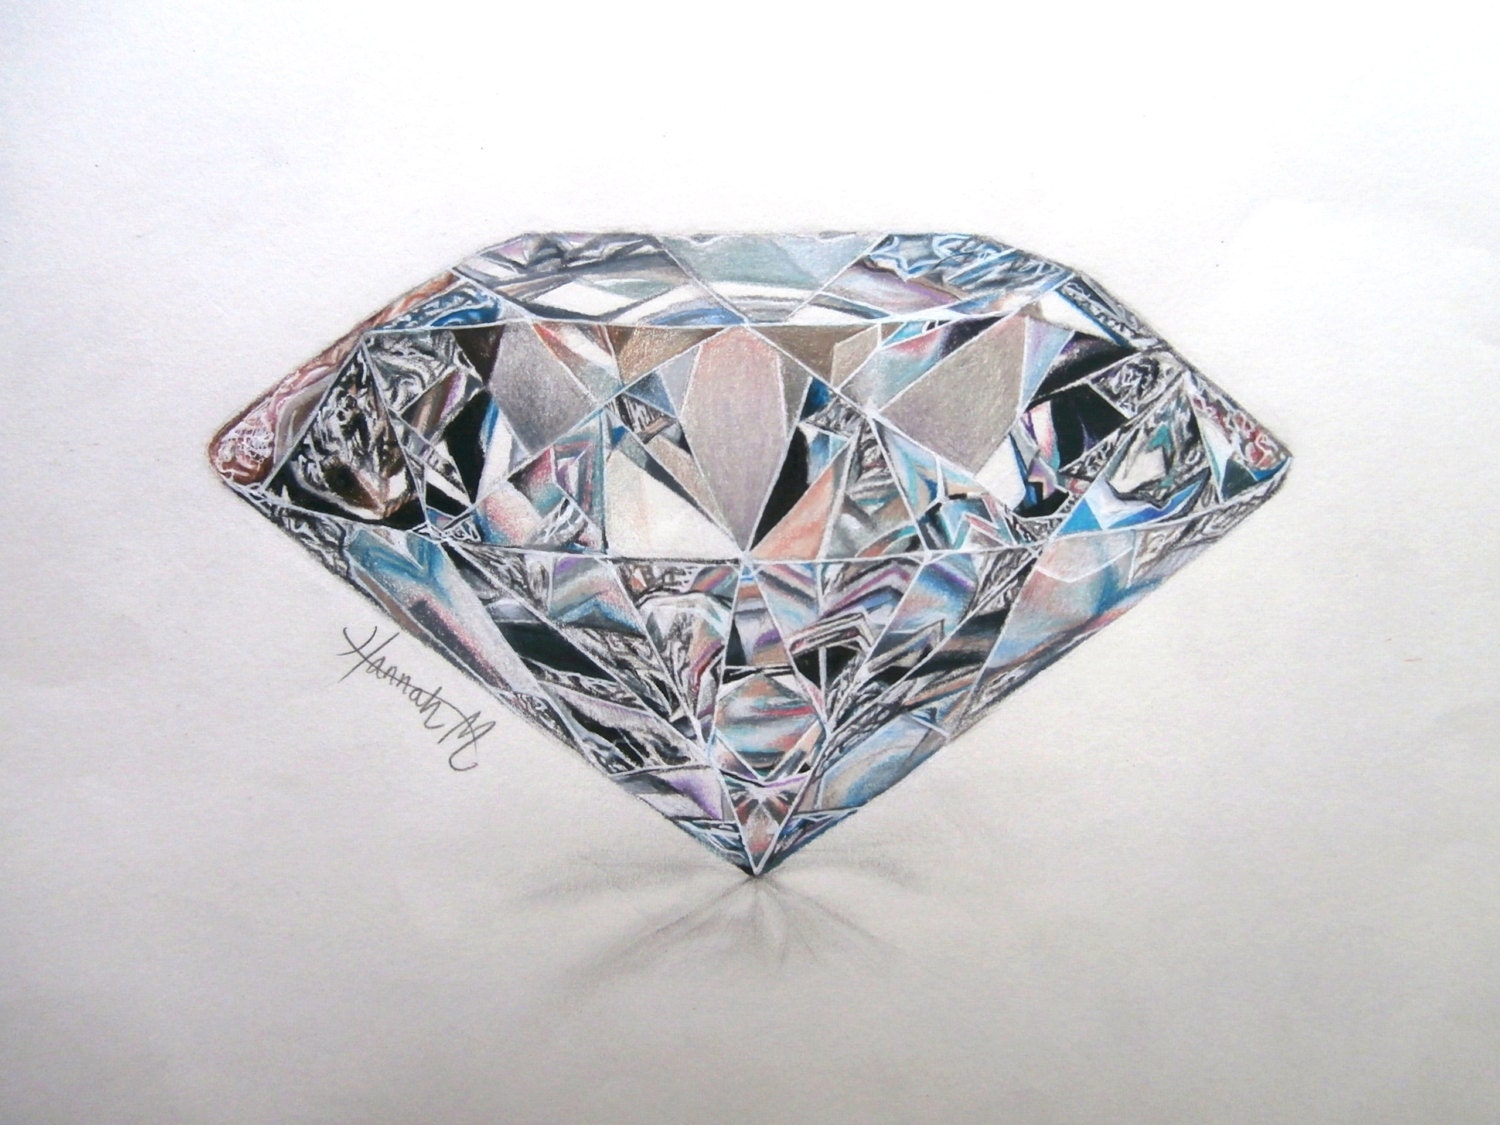 diamond pencil sketch - photo #1